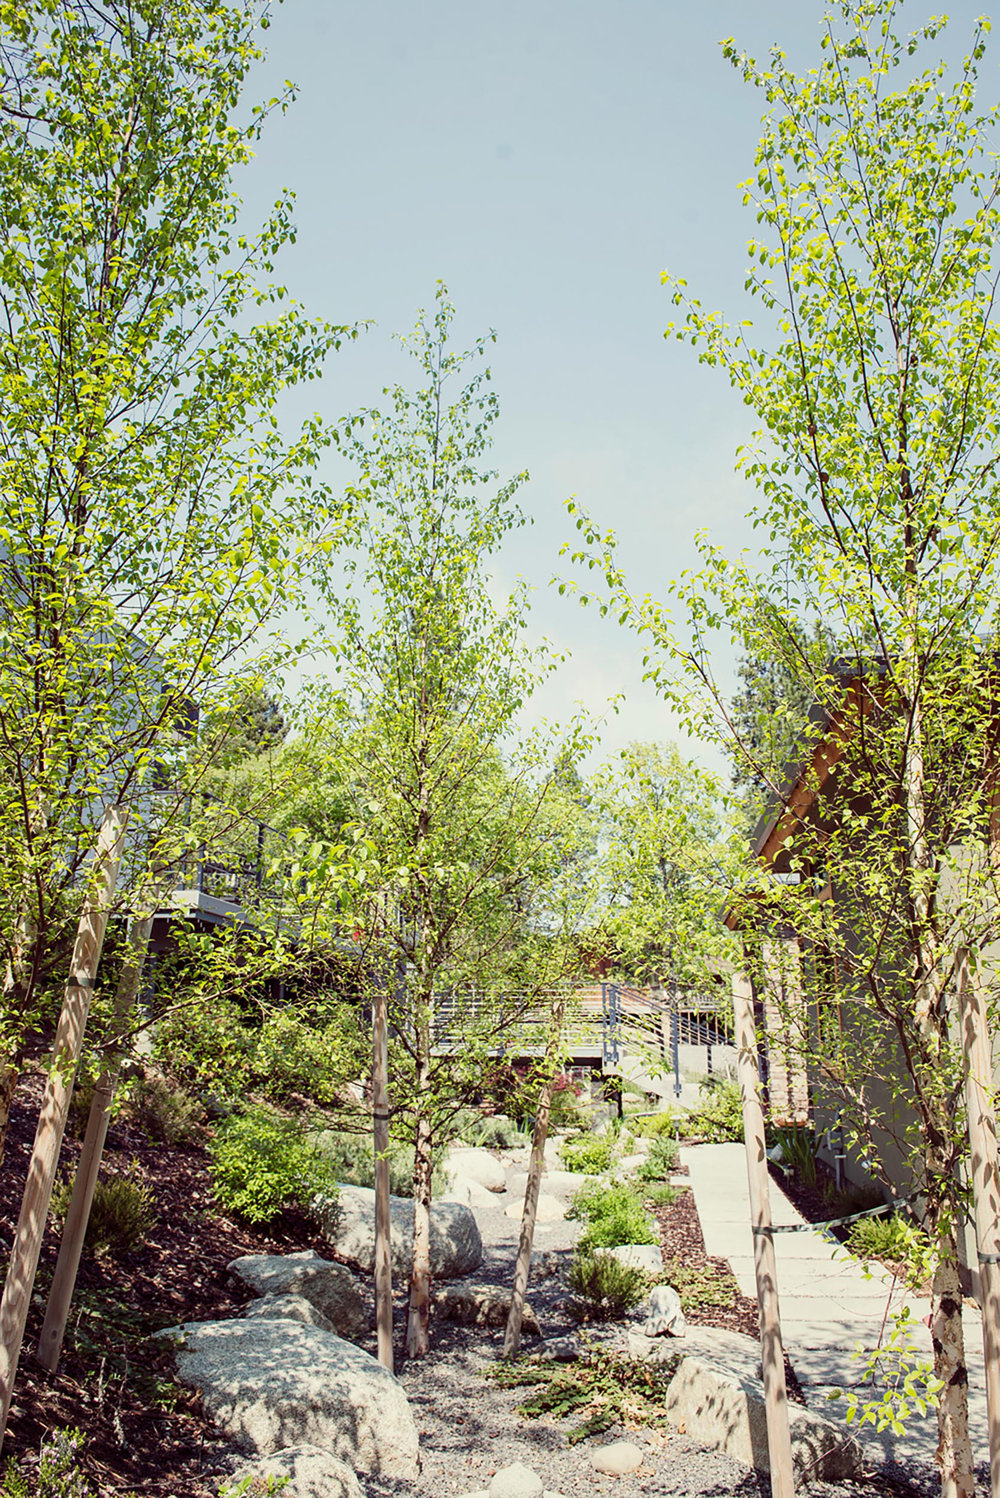 Rive birch + seasonal sustainable man made crushed gravel + granite boulder creek bed + segmented concrete pathways + concrete + steel stairs and bridge.jpg